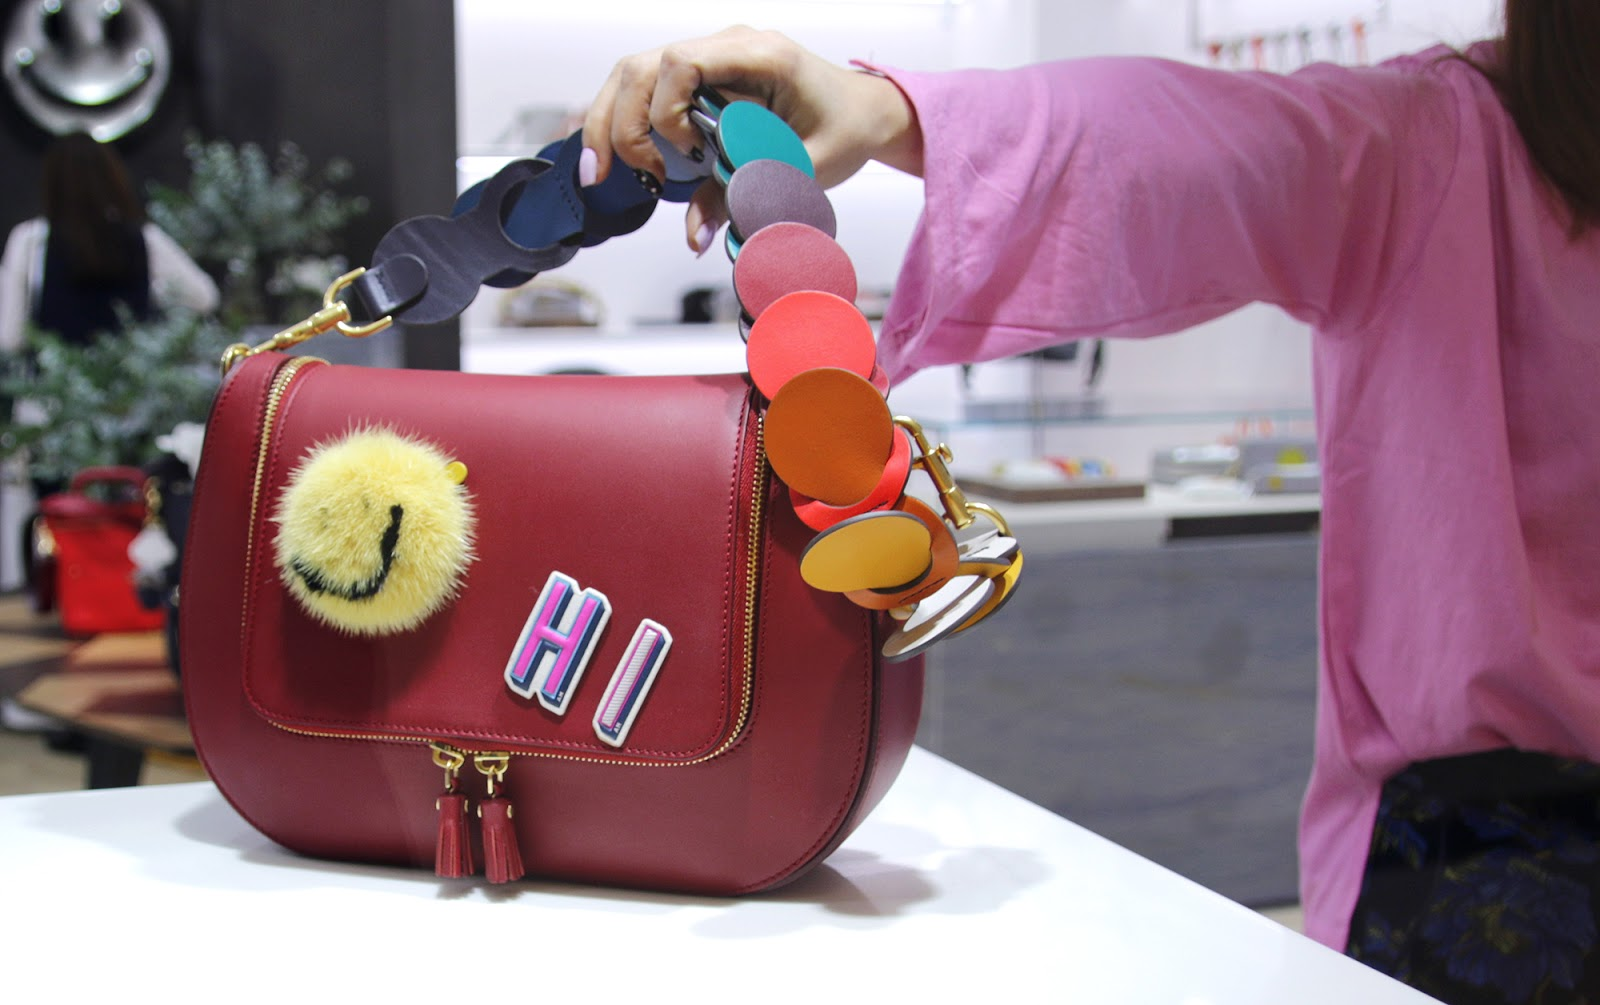 2017 S Anya Hindmarch New Bags Smiley Straps